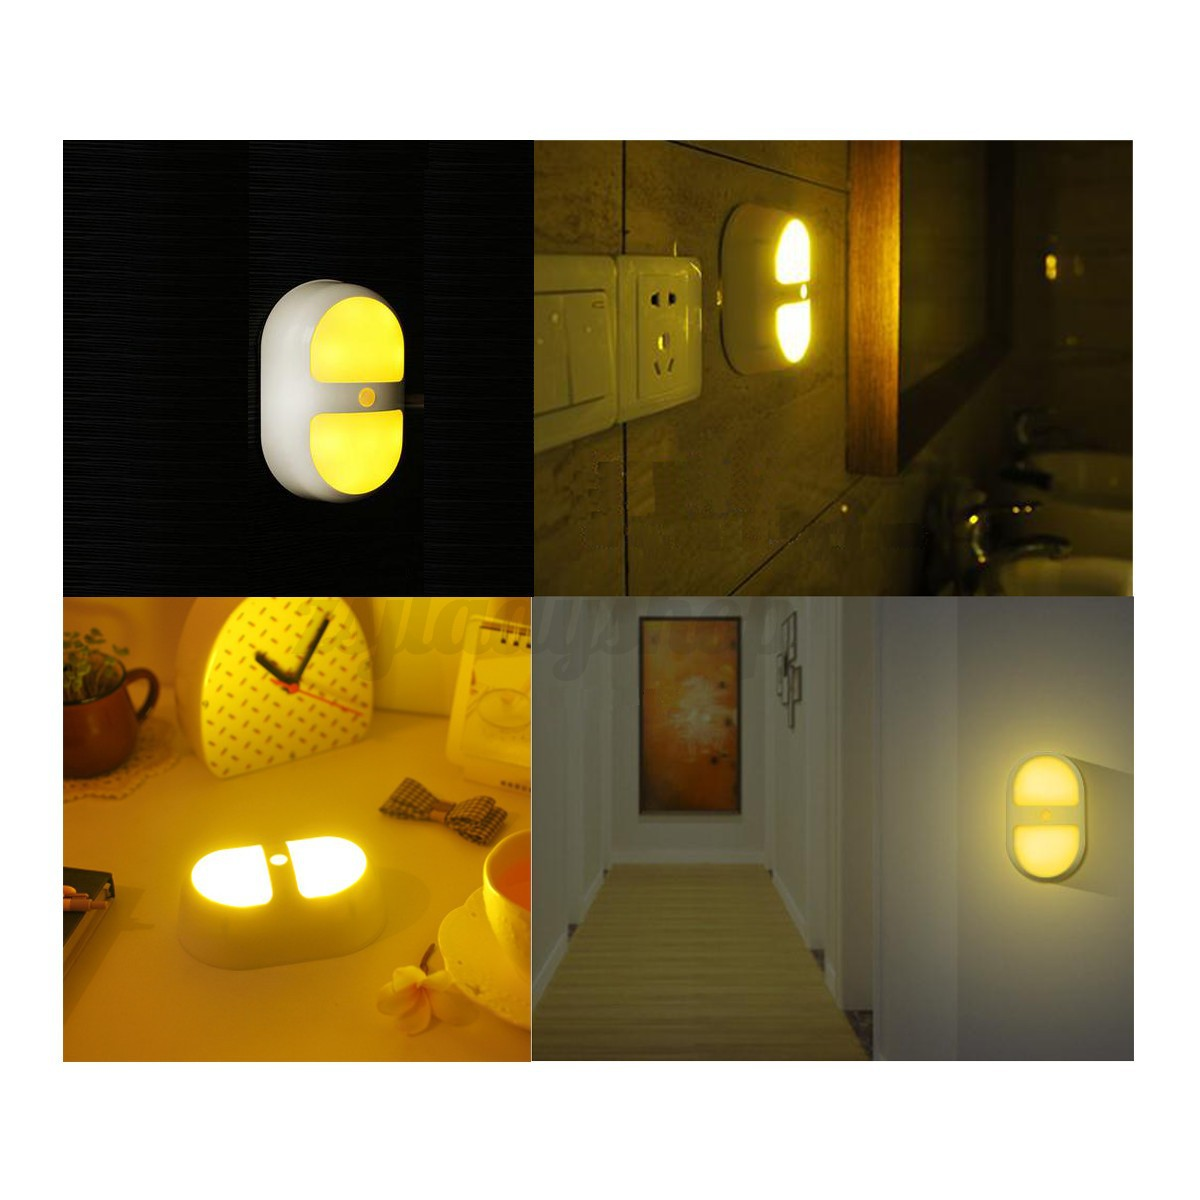 Bedroom Lamps With Night Light Sensor Night Light Wireless Led Human Motion Lamp Ceiling